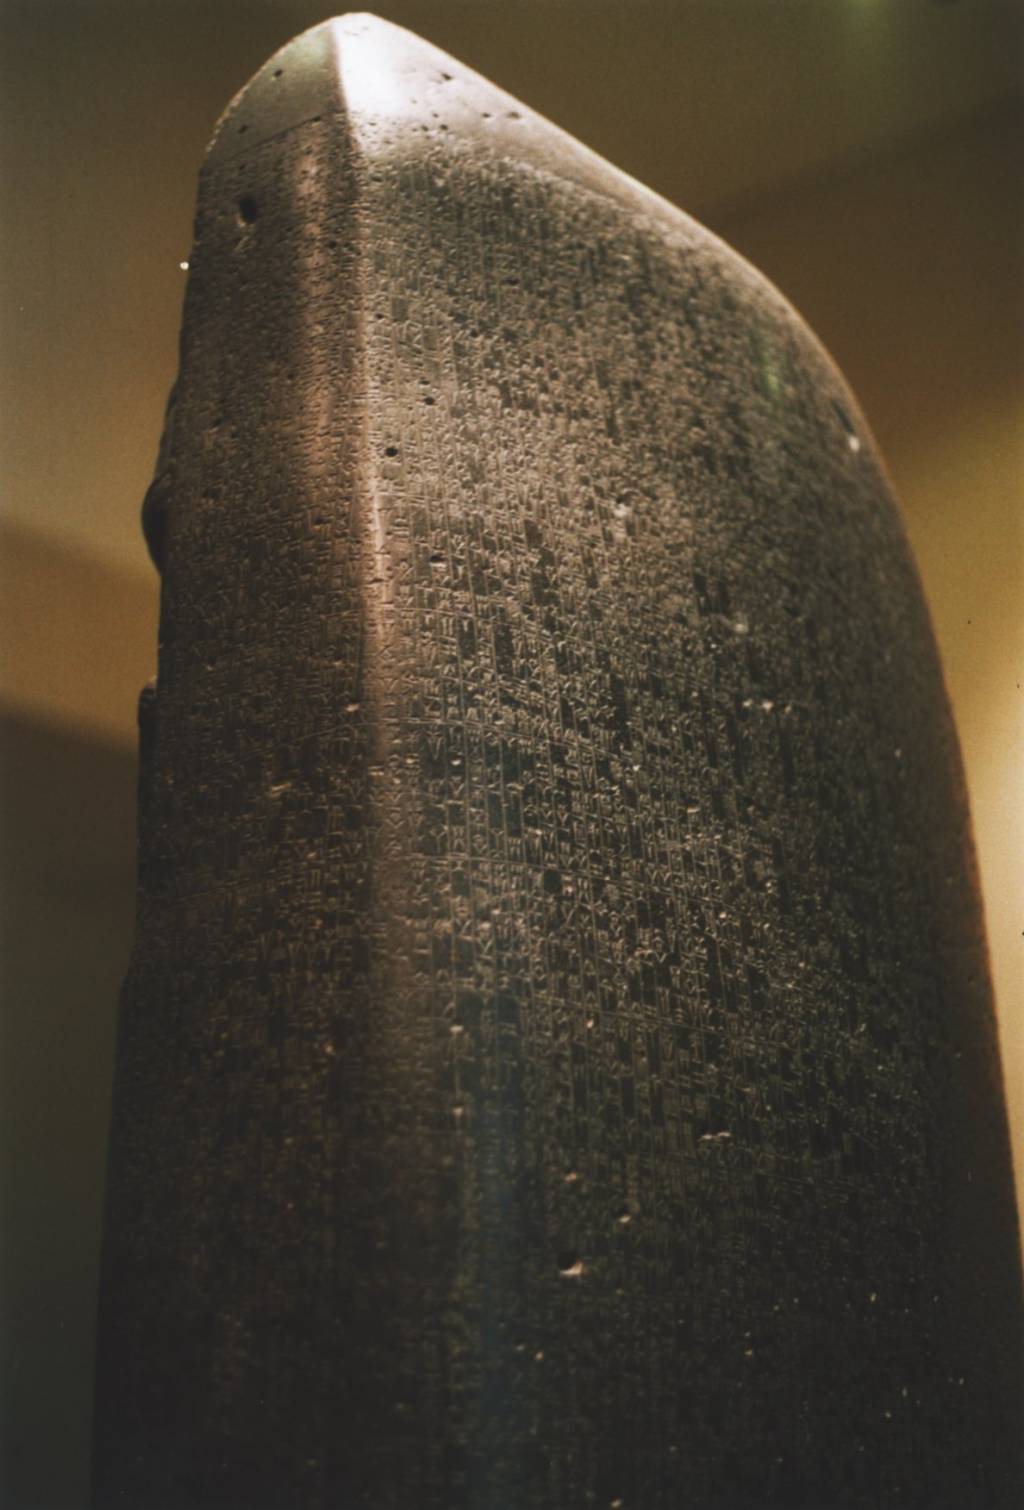 hammurabis legal law code essay The code of hammurabi and its influence on modern law  he founded the first written legal code  in reading and thinking of similarities with modern law an essay.